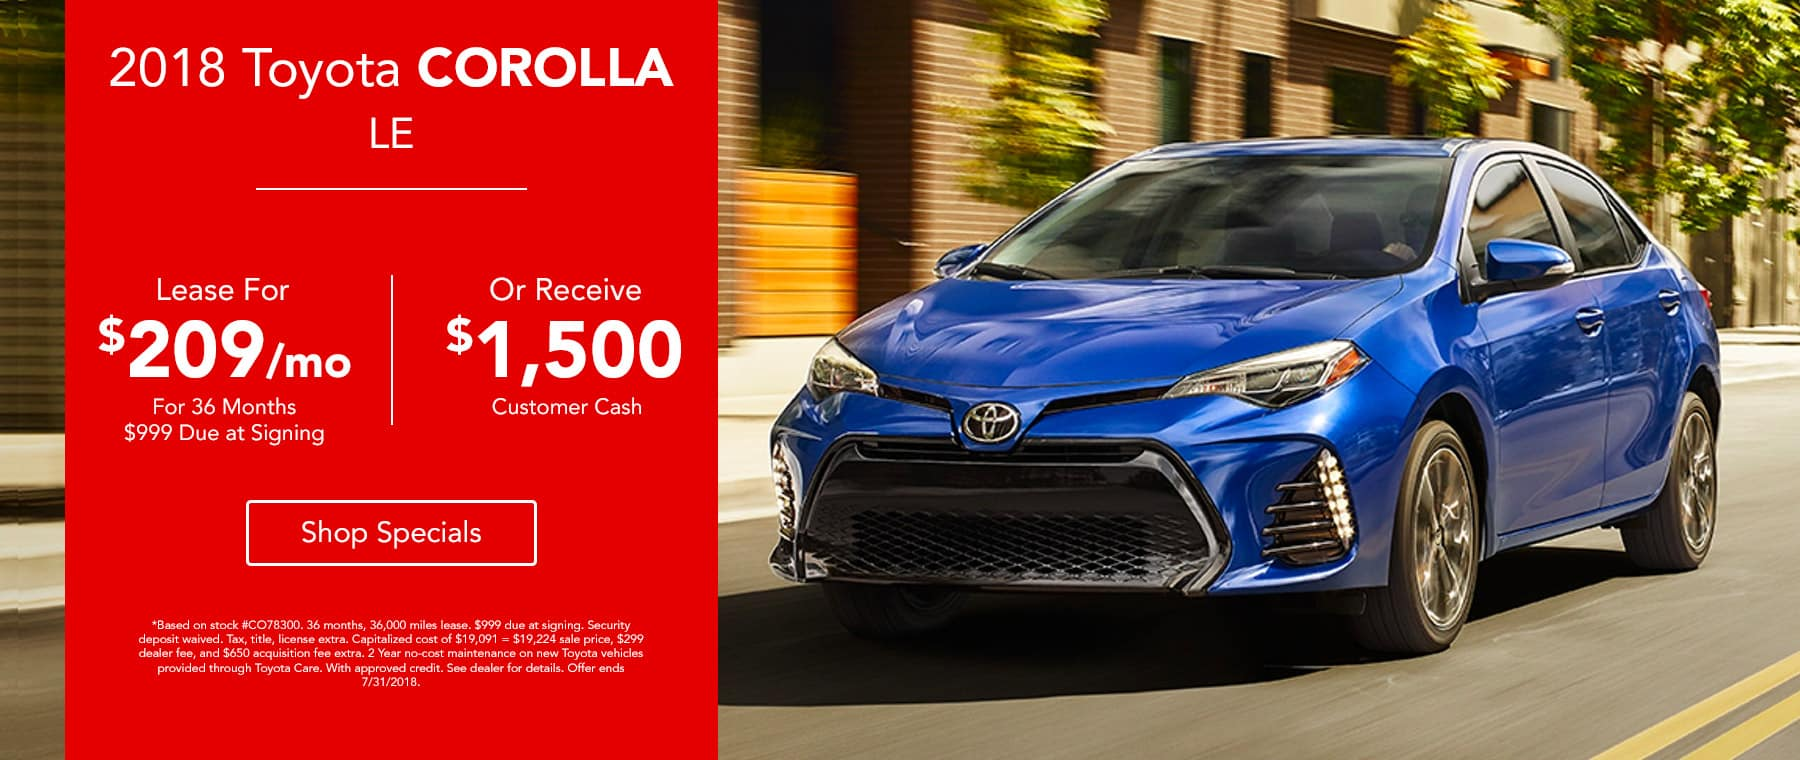 2018 Toyota Corolla LE lease for $209 for 36 months